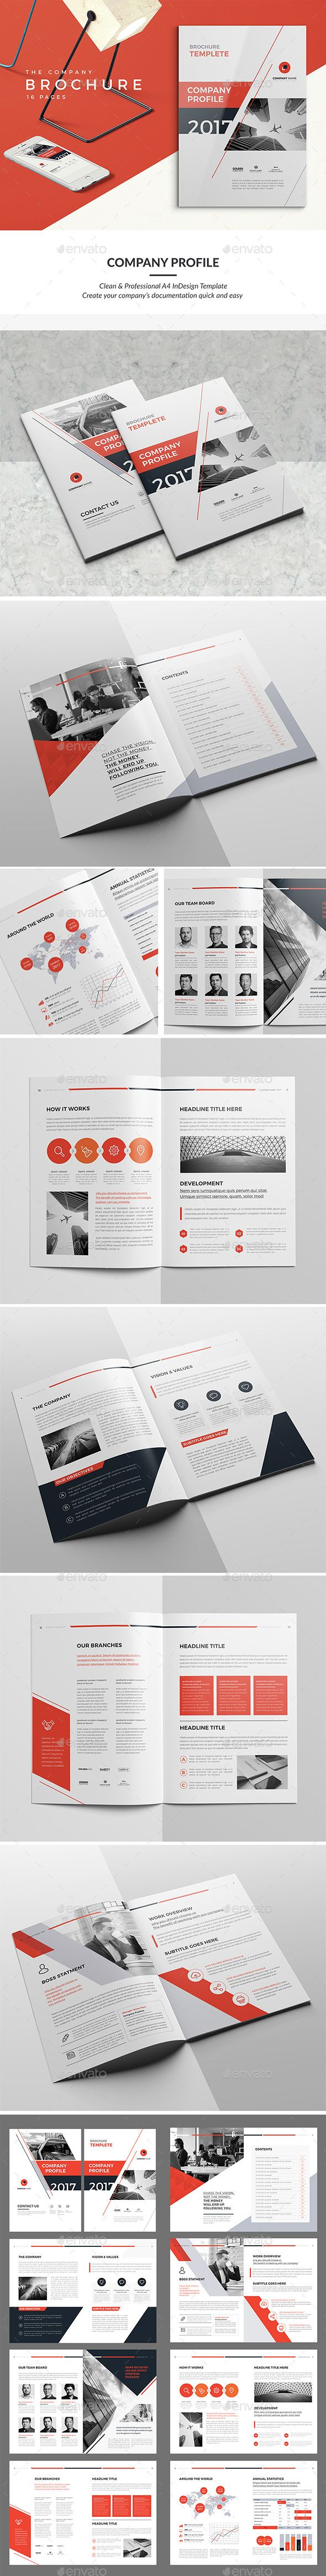 Company Profile Brochure | Company profile, Brochure template and ...